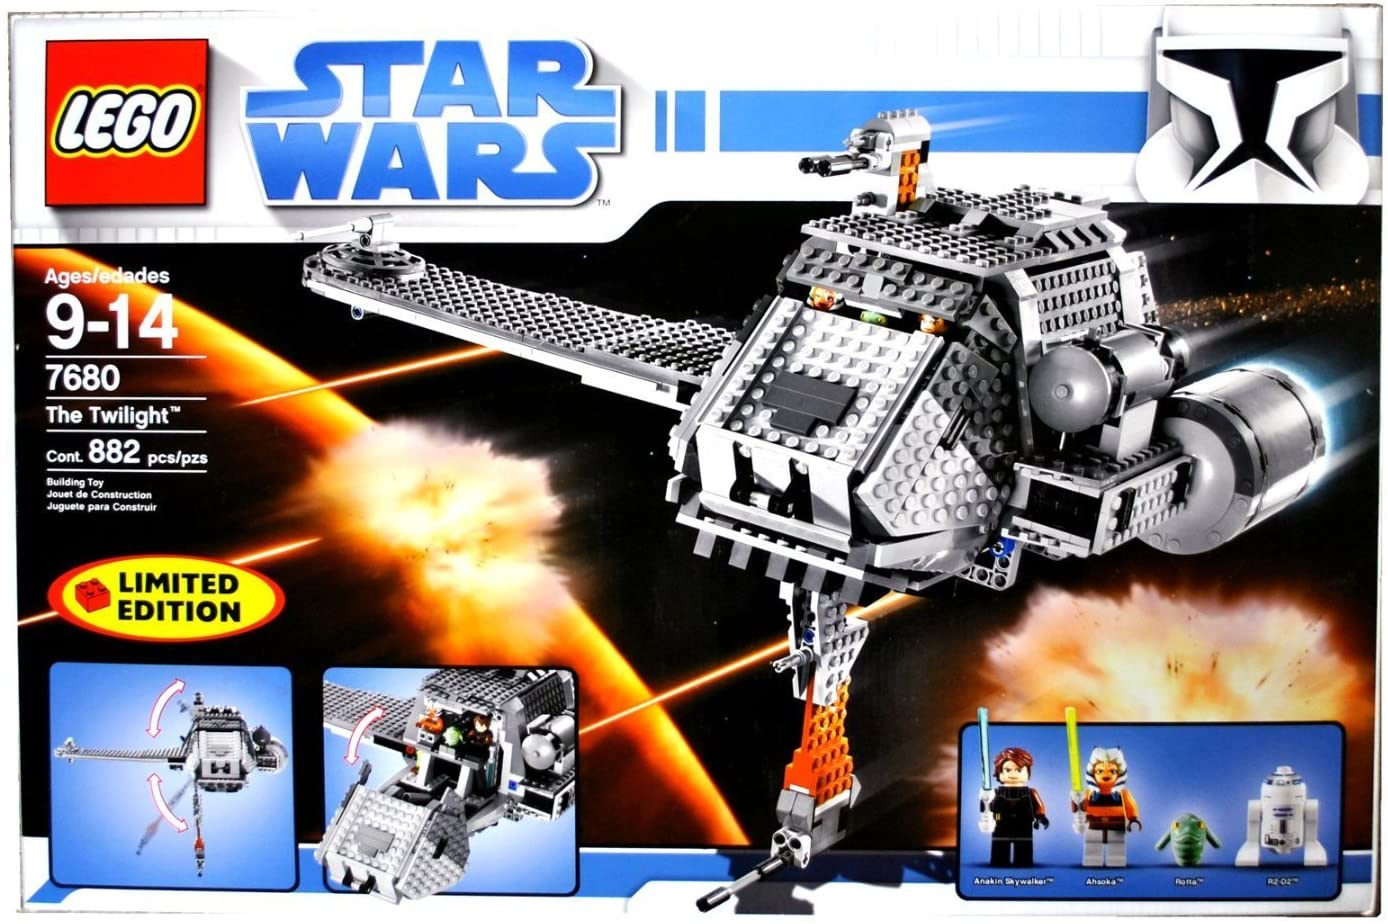 LEGO The Twilight - Star Wars Set 7680